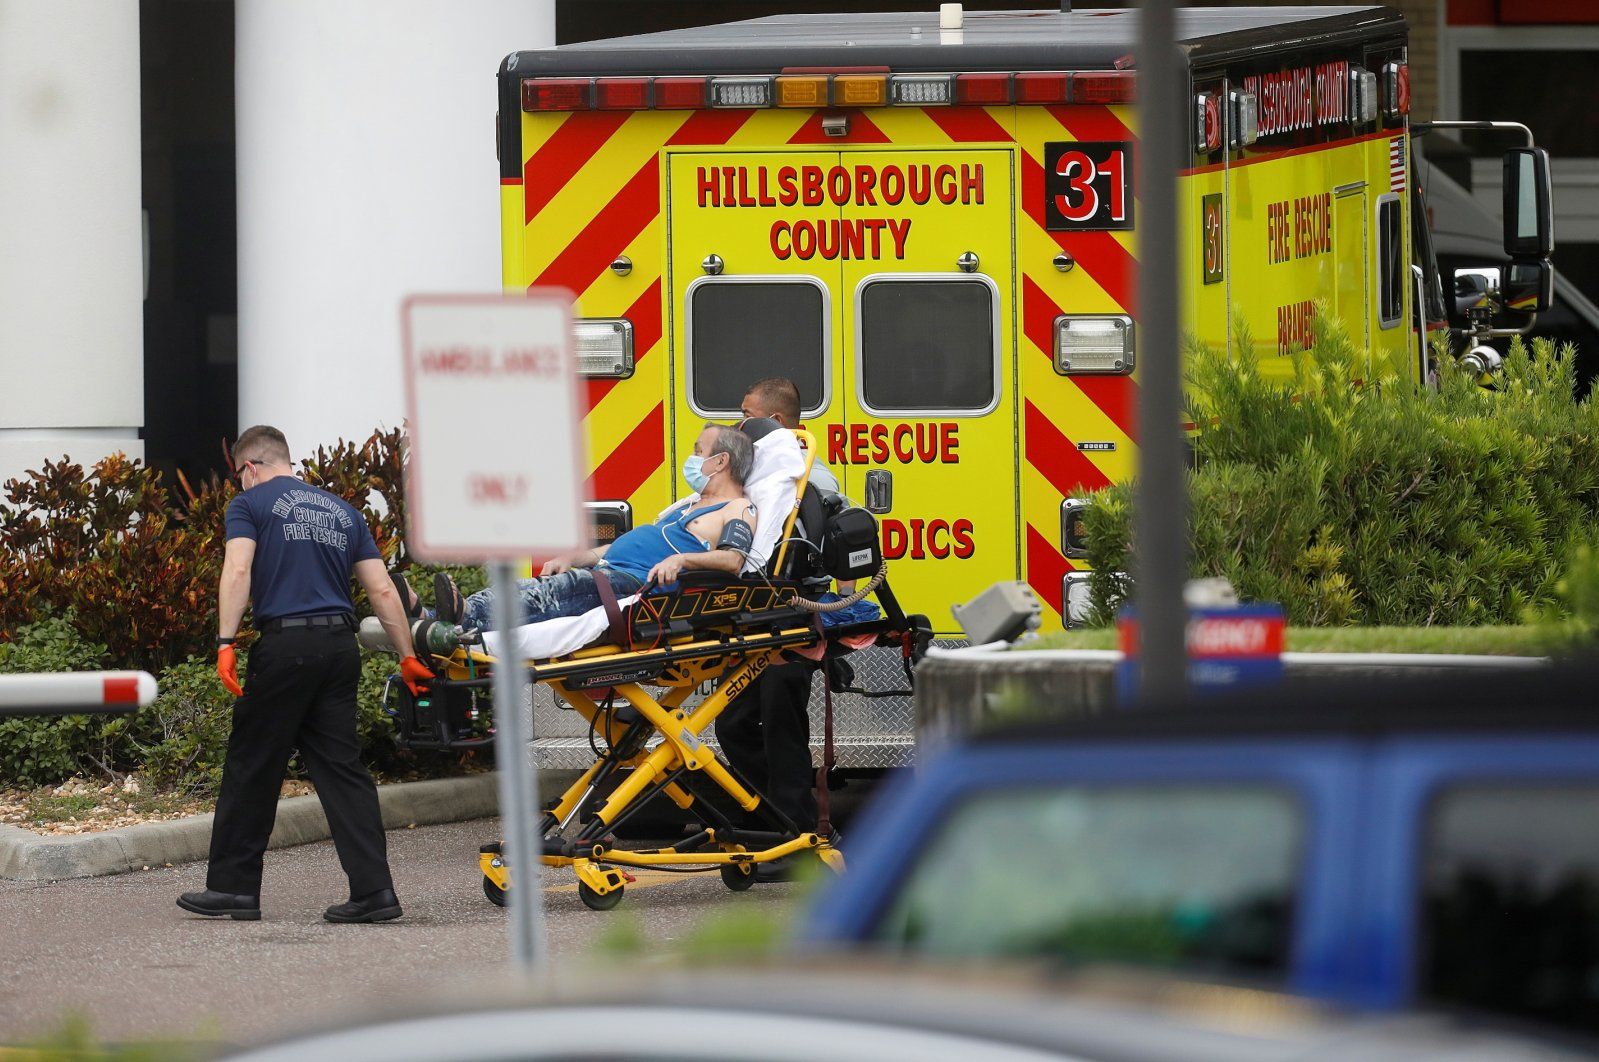 Hillsborough County Rescue first responders admit a patient to the emergency room at St. Joseph's Hospital amid the coronavirus pandemic in Tampa, Florida, U.S., Aug. 3, 2021. (Reuters Photo)